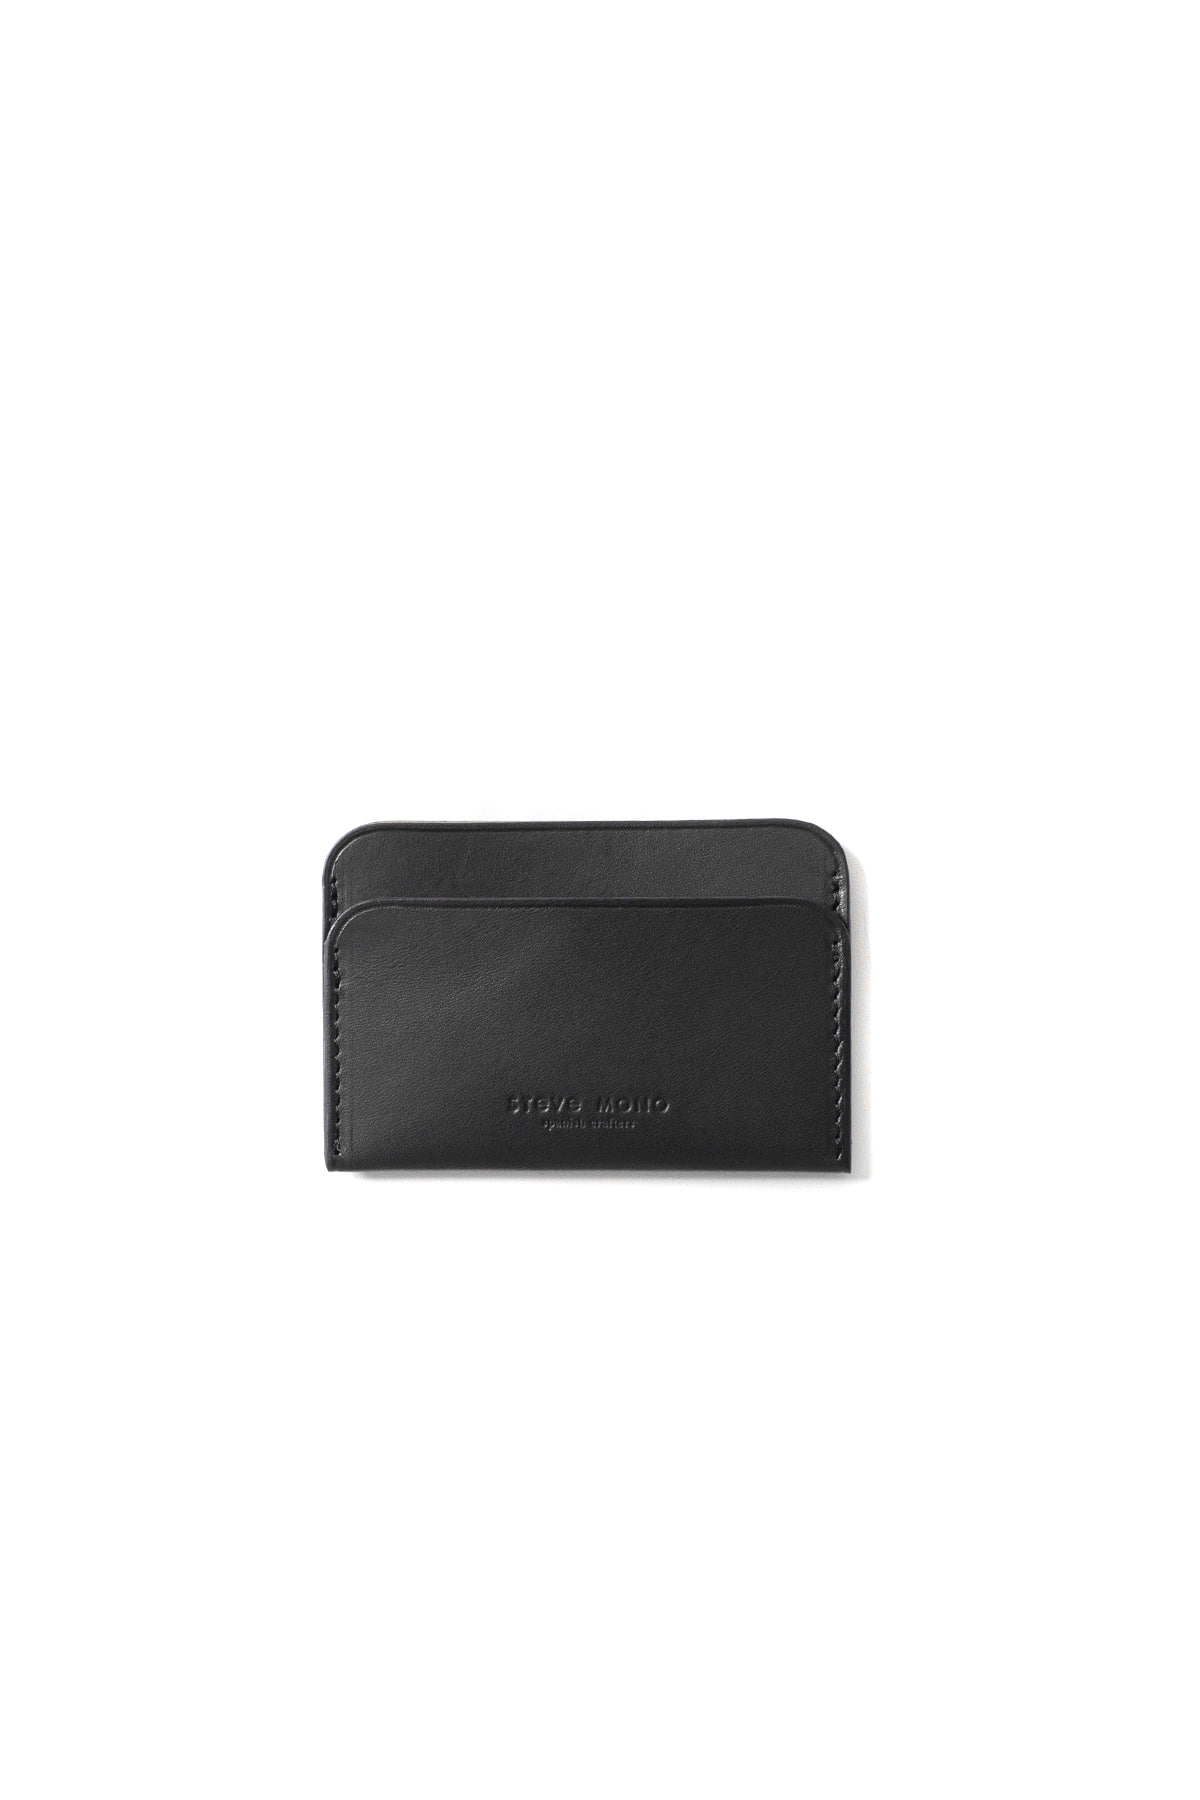 STEVE MONO : 09/8 Classic Cards Holder (Black)